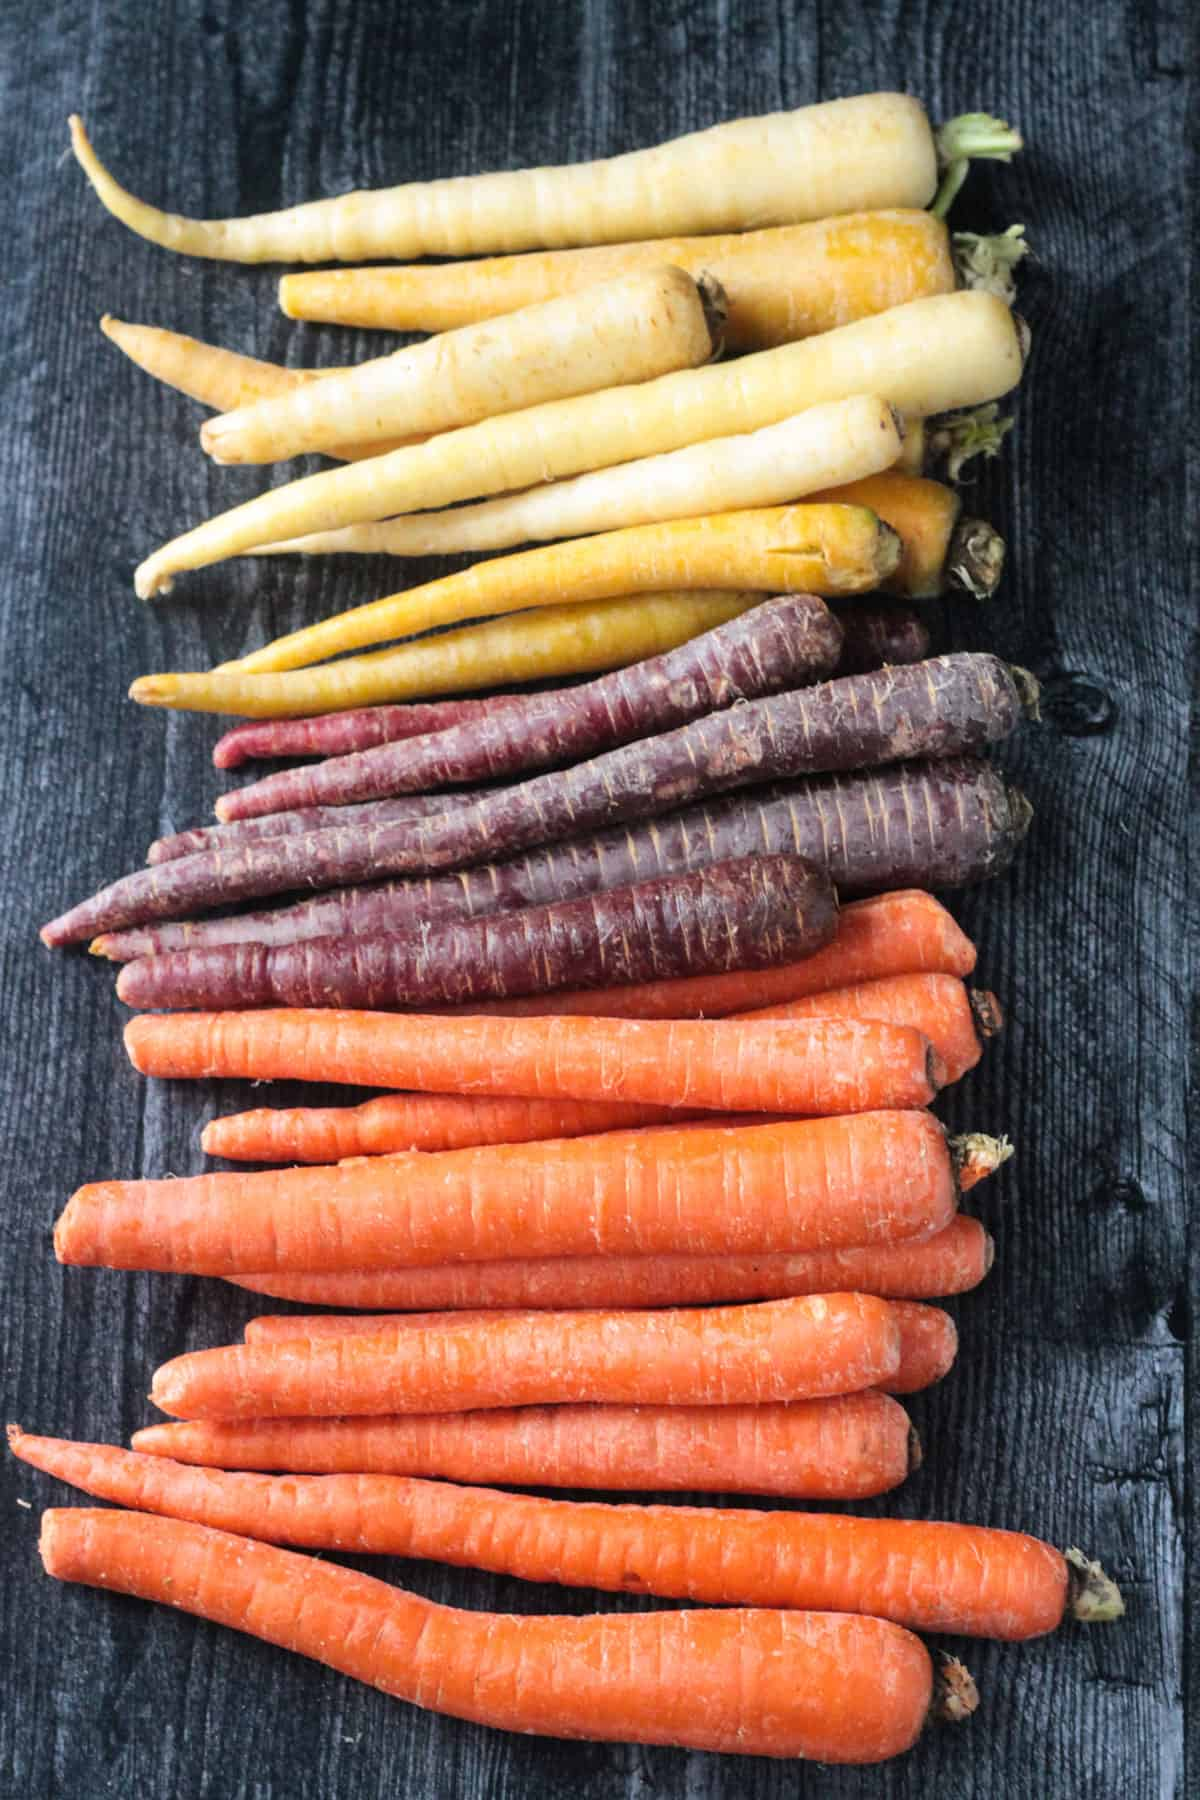 A variety of different colored carrots lined up in a row.